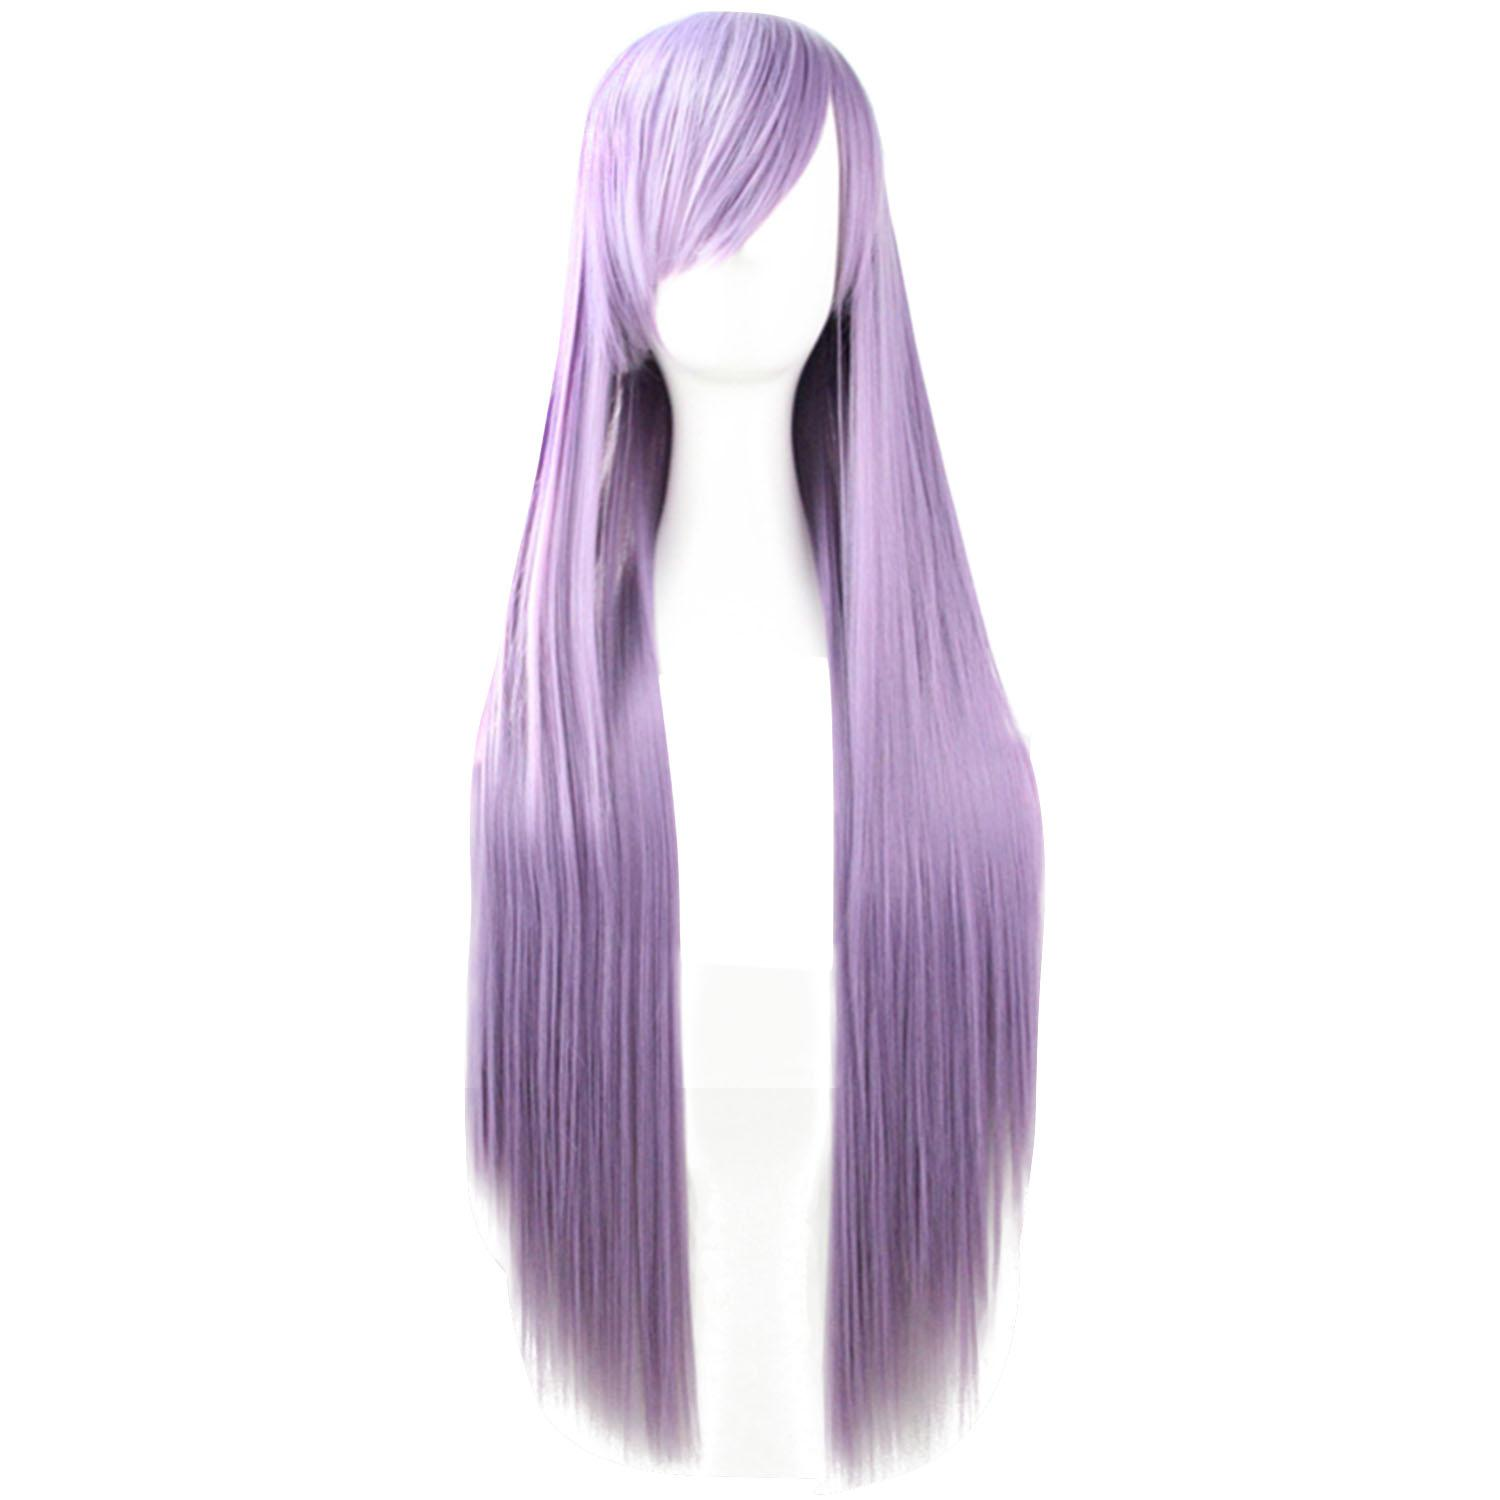 Boom Shakalaka 80cm 32inch Length Fashion Colorful Cosplay Long Straight Hair Extensions Wig for Masquerade Party